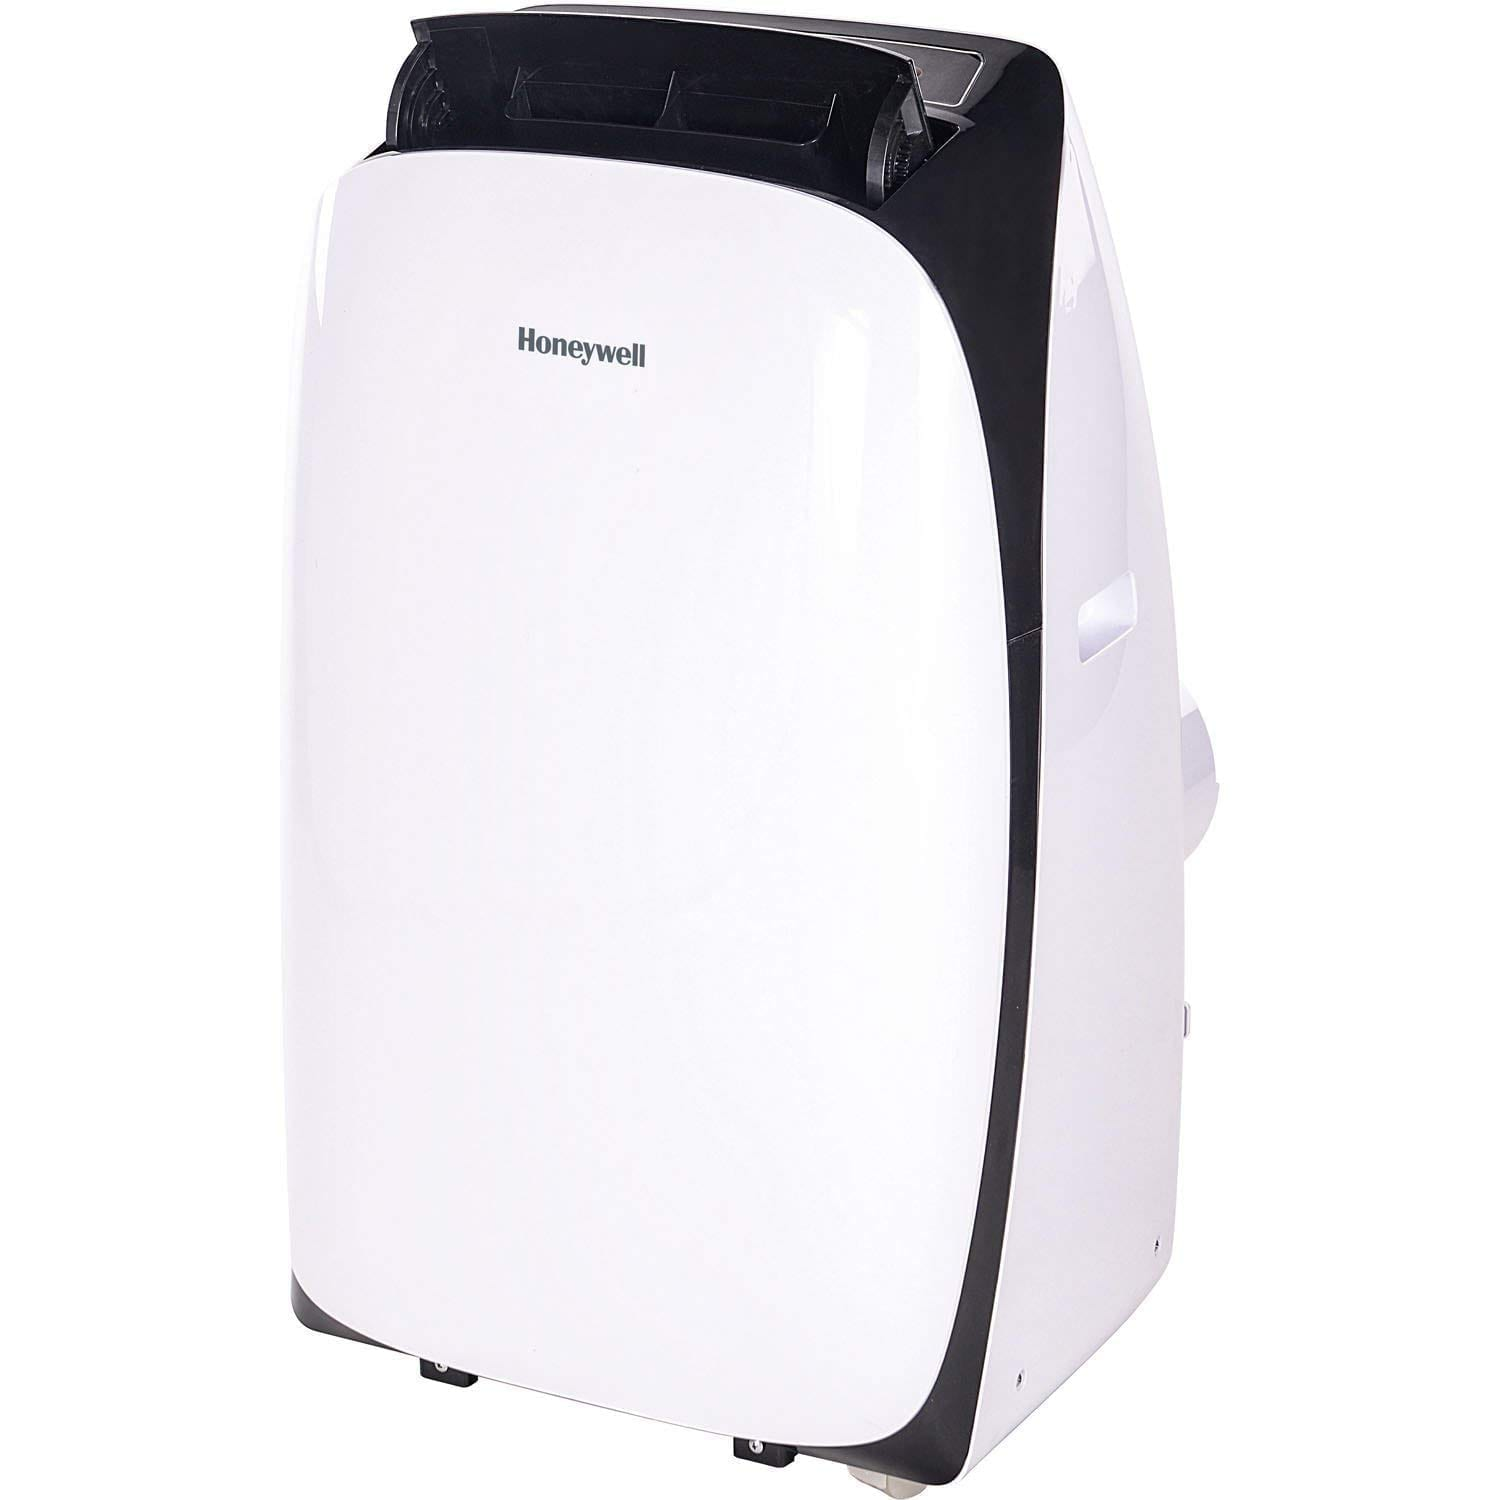 Honeywell 14000 Btu Portable Air Conditioner